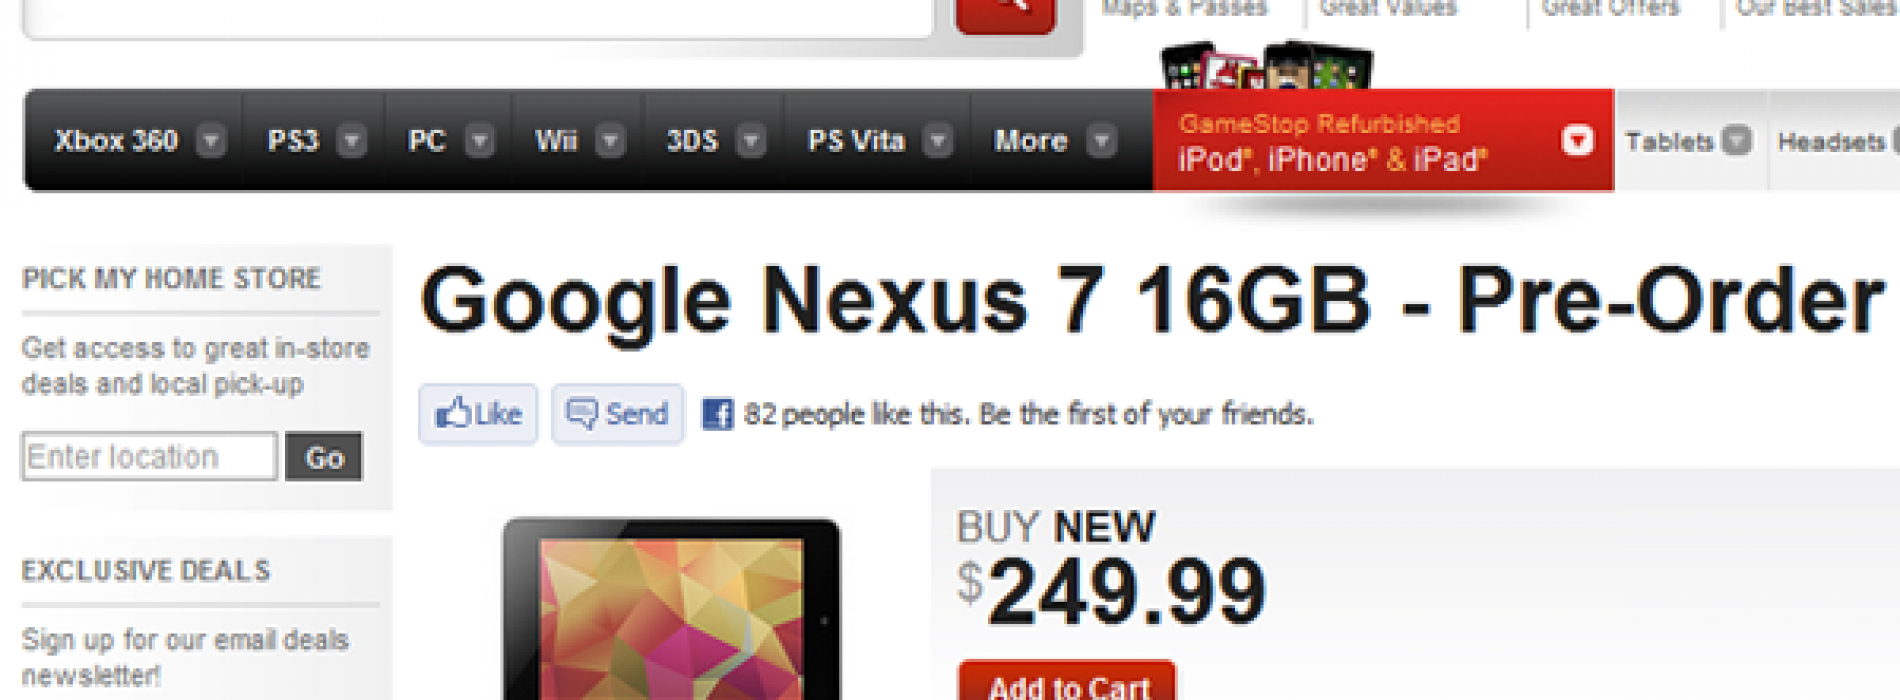 GameStop to carry the Nexus 7, now taking preorders